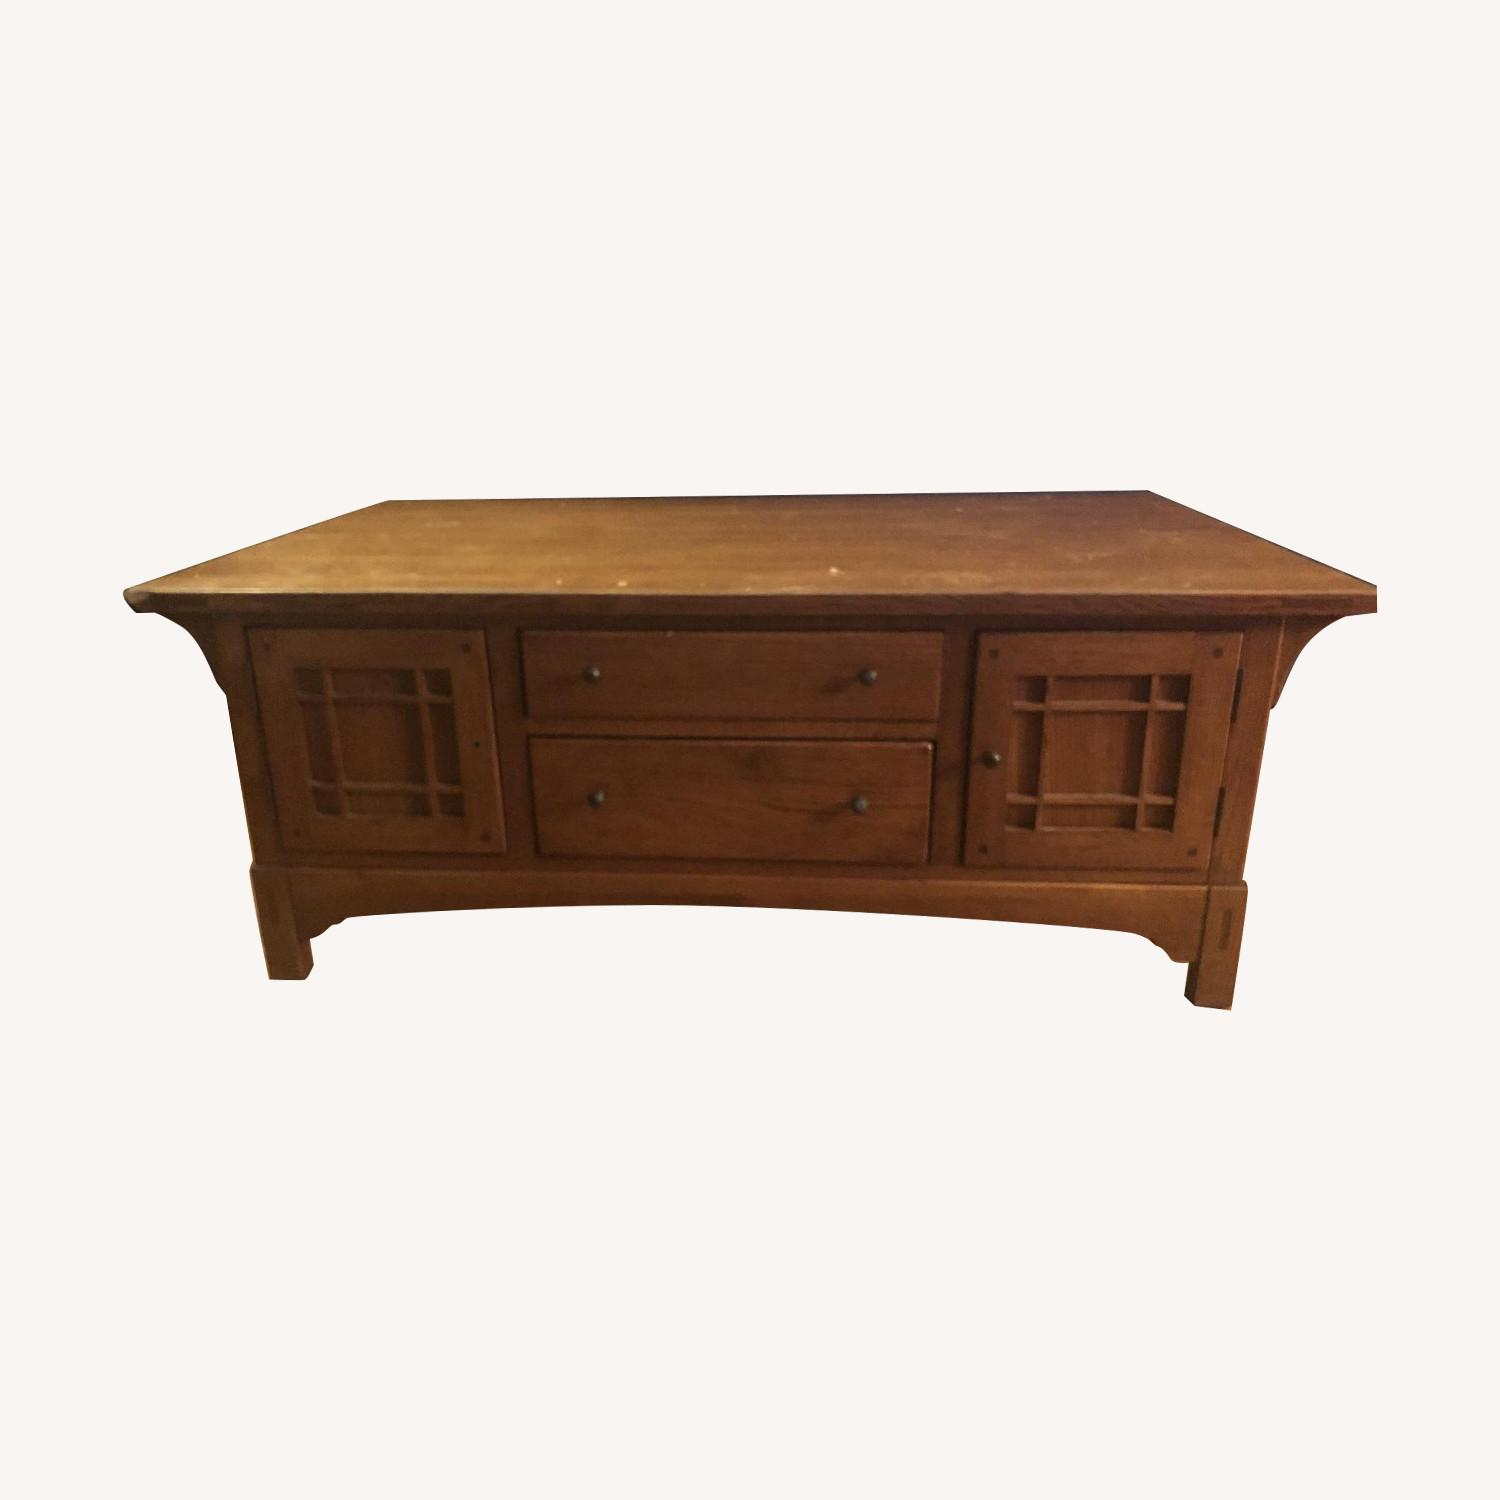 Lexington Furniture Arts and Crafts Coffee Table - image-0